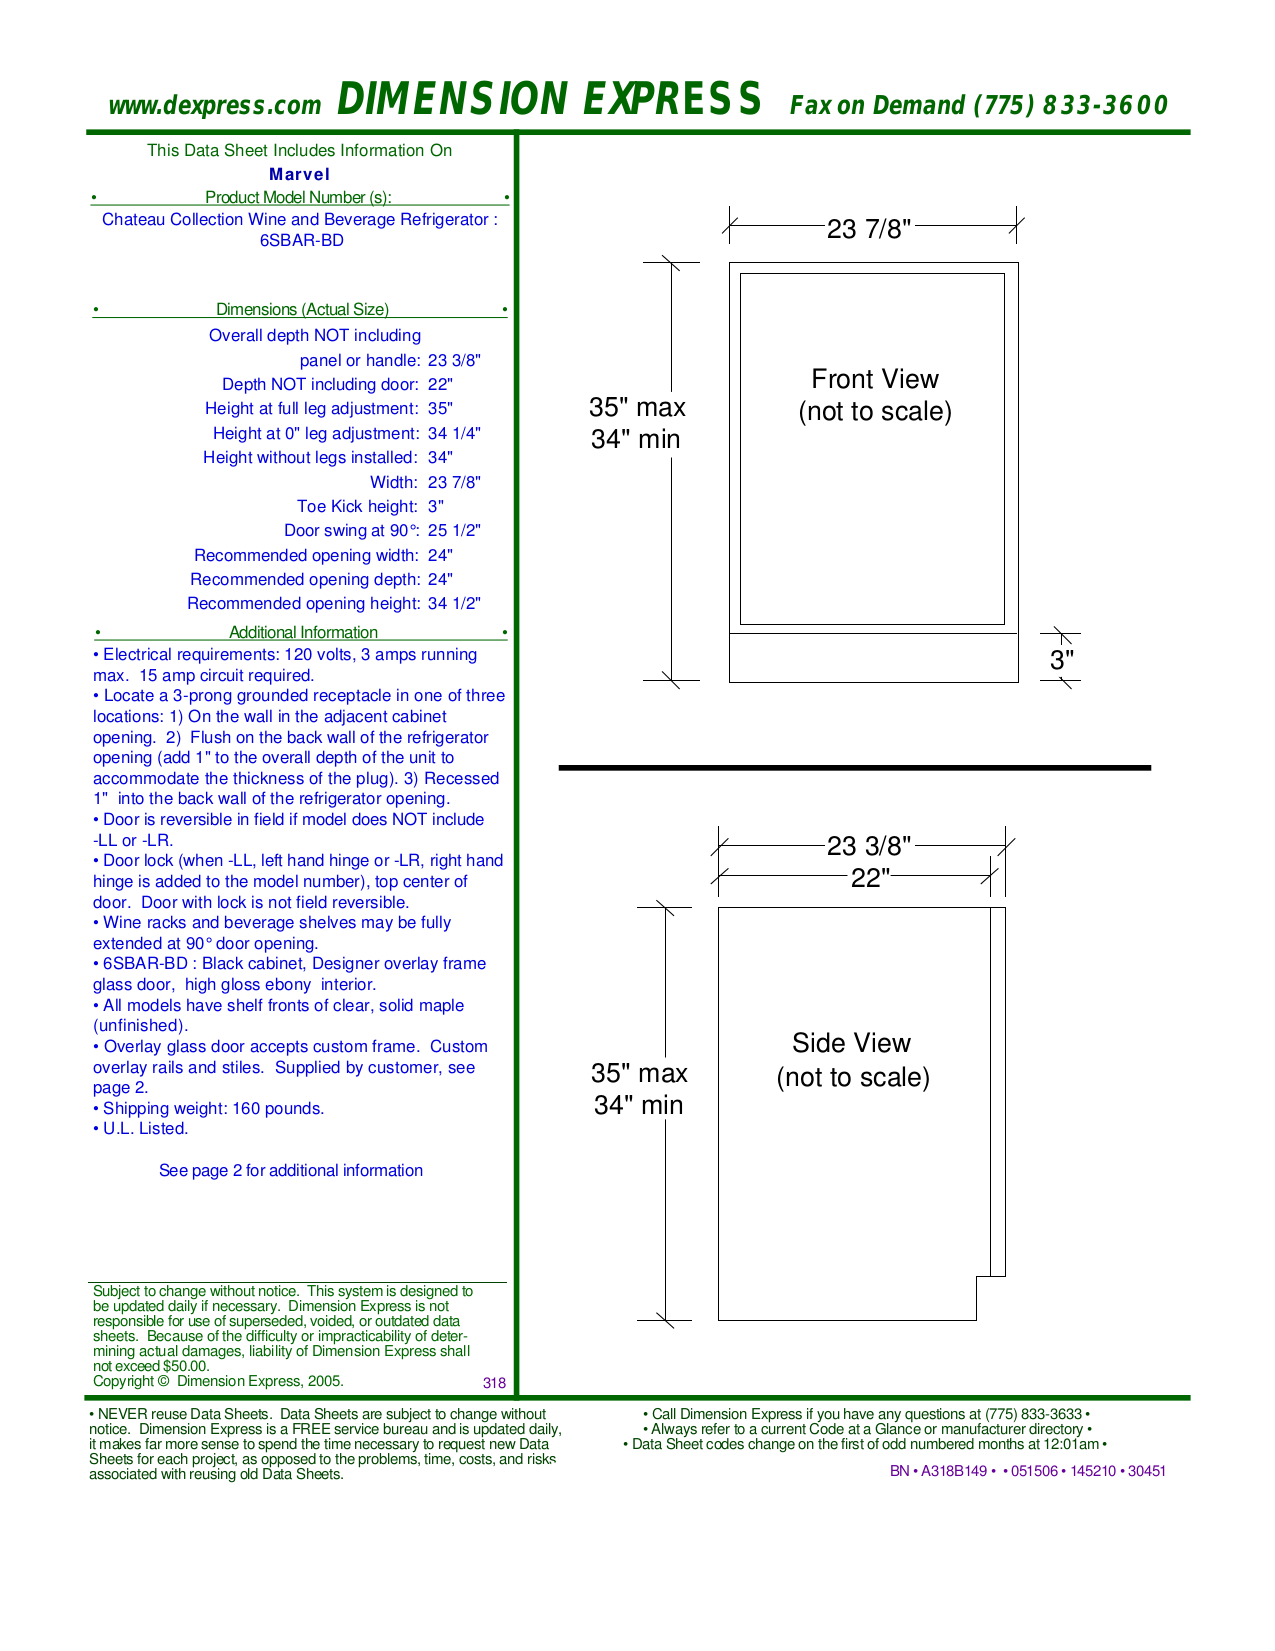 pdf for Marvel Refrigerator 6SBAR-BD manual